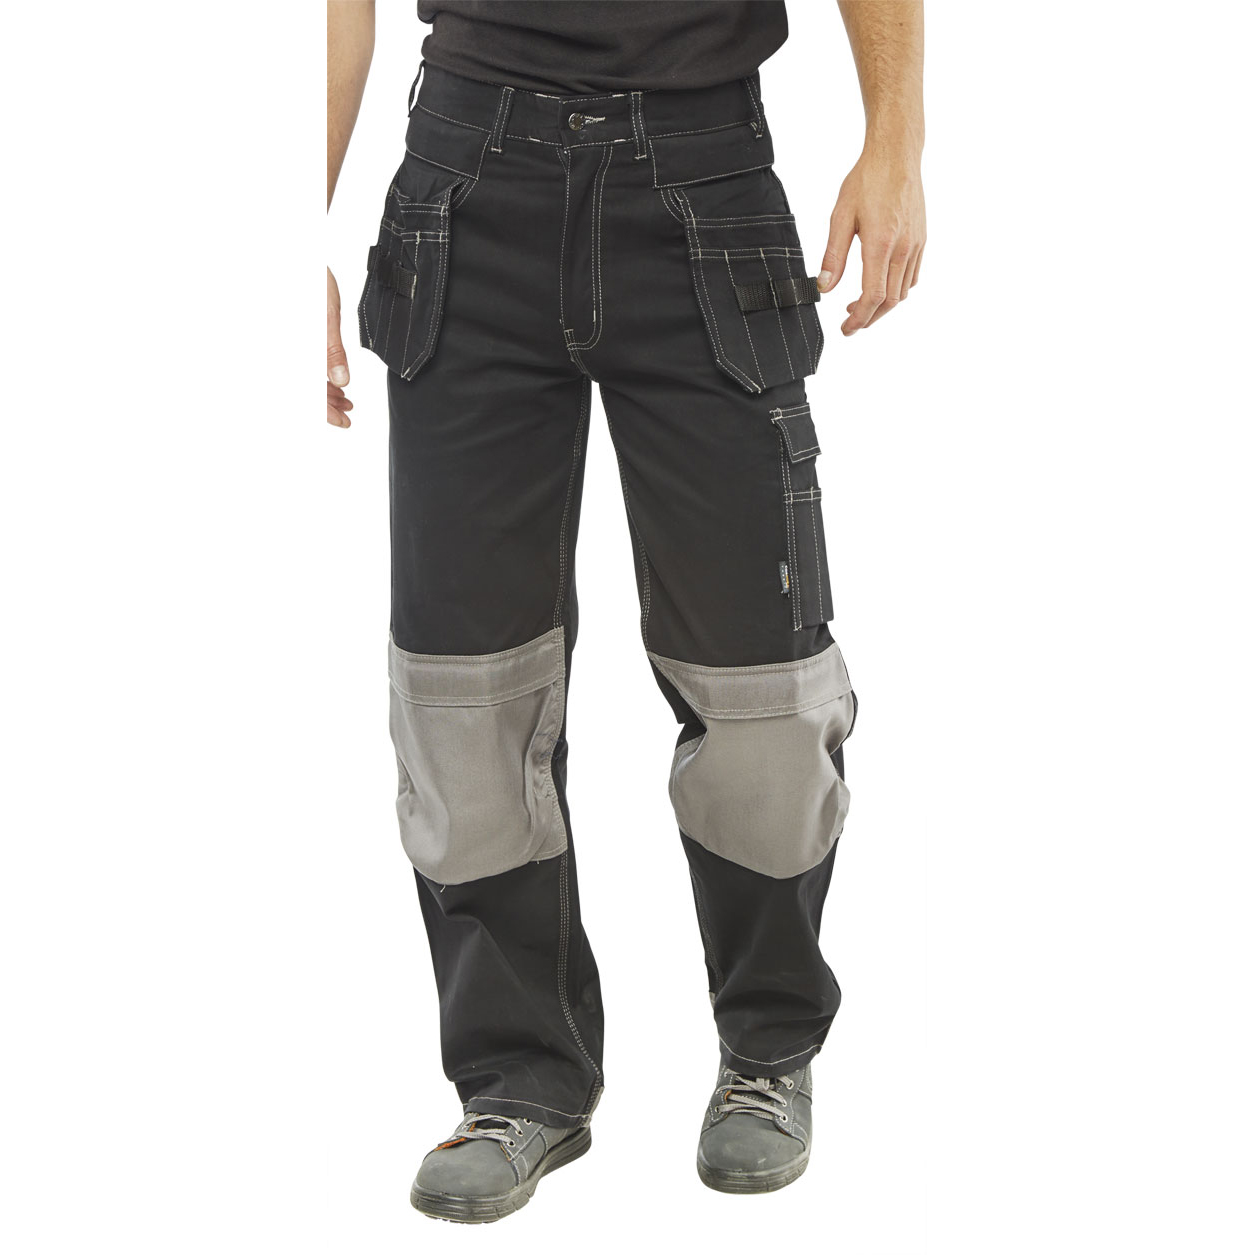 Click Workwear Kington Trousers Multipurpose Pockets Black 28 Ref KMPTBL28 Up to 3 Day Leadtime